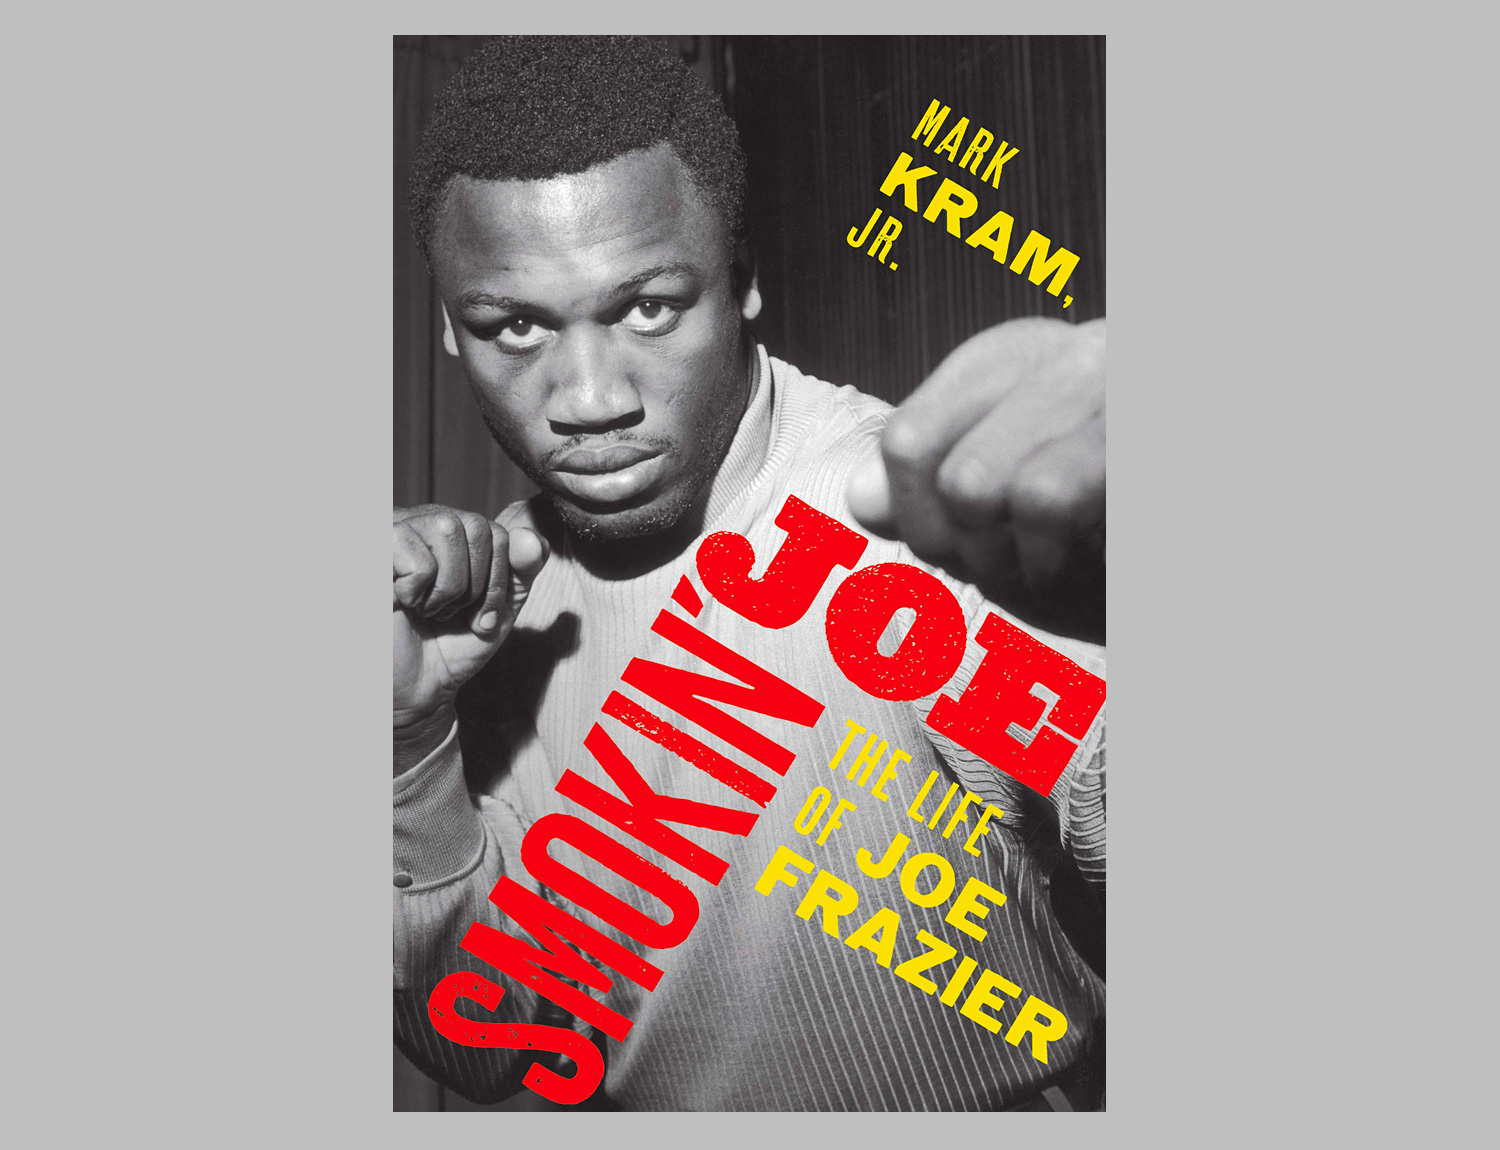 Smokin' Joe: The Life of Joe Frazier at werd.com